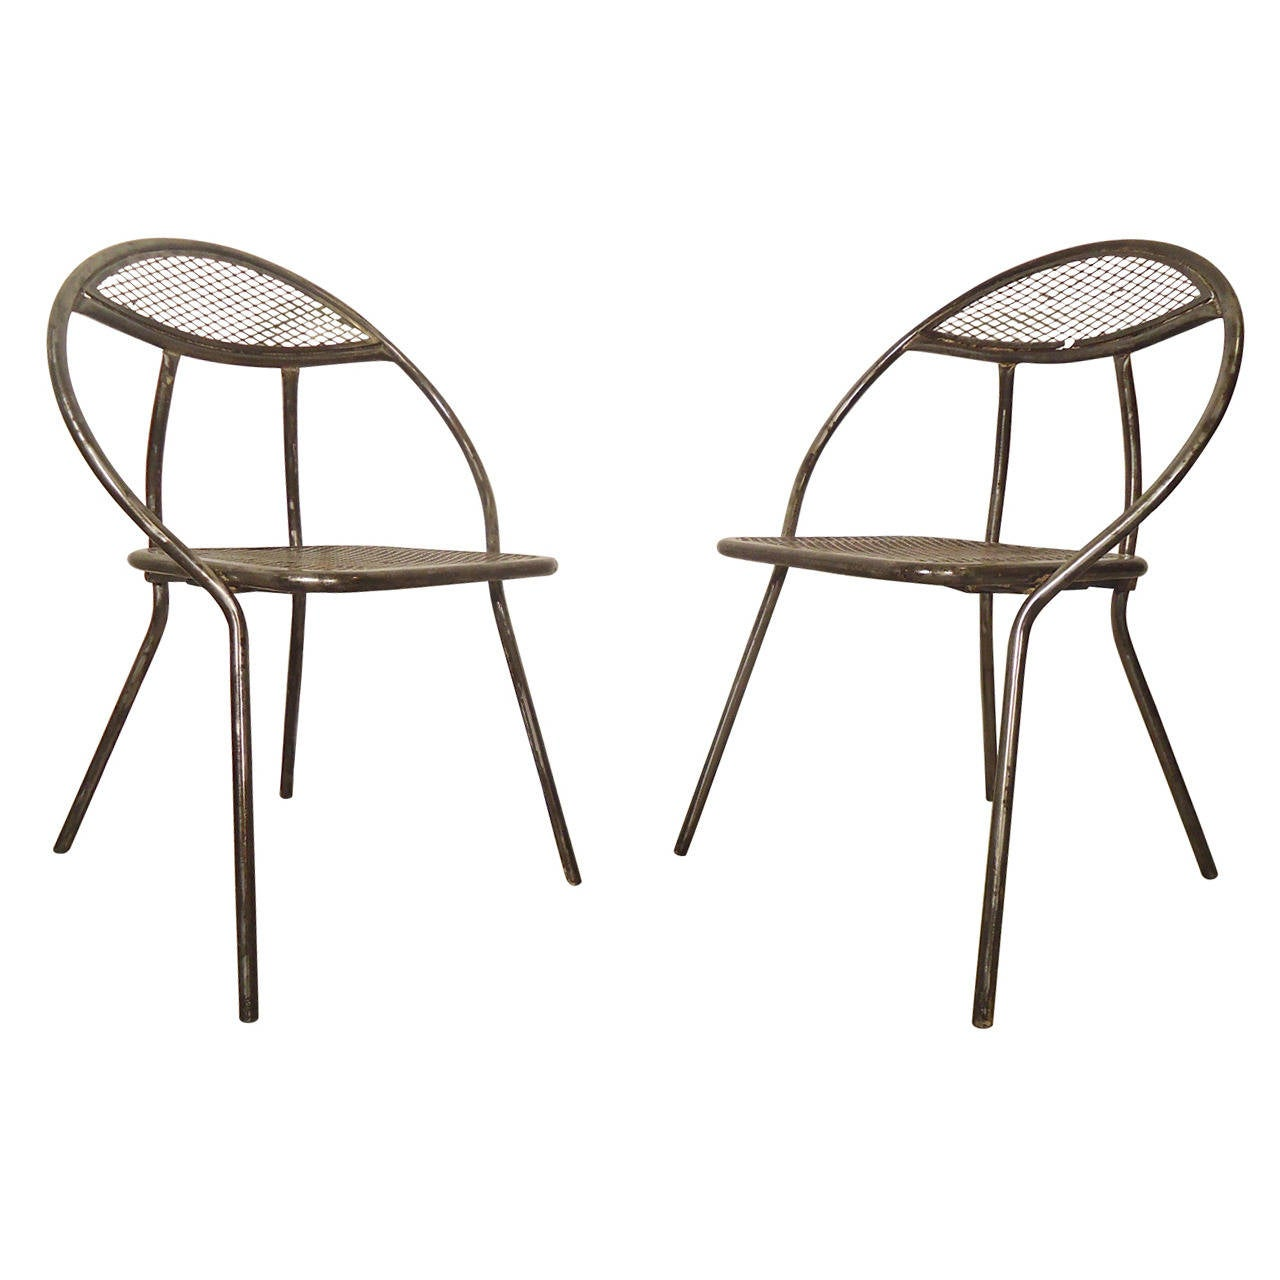 mid century metal patio chairs by rid jid